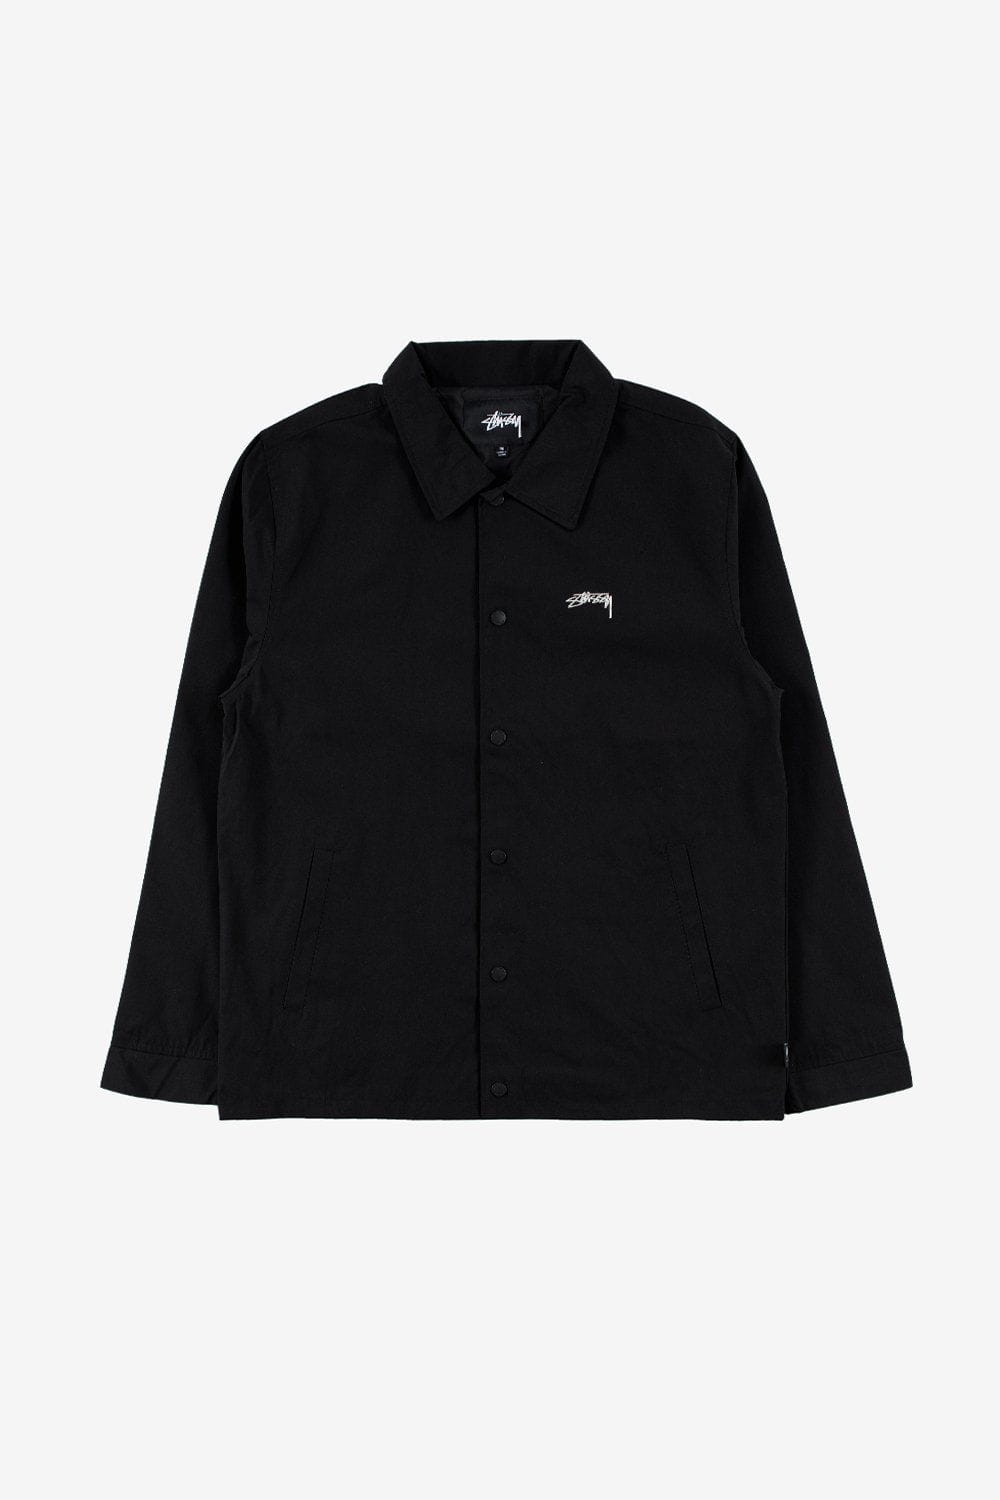 Stussy Apparel Classic Coach Jacket